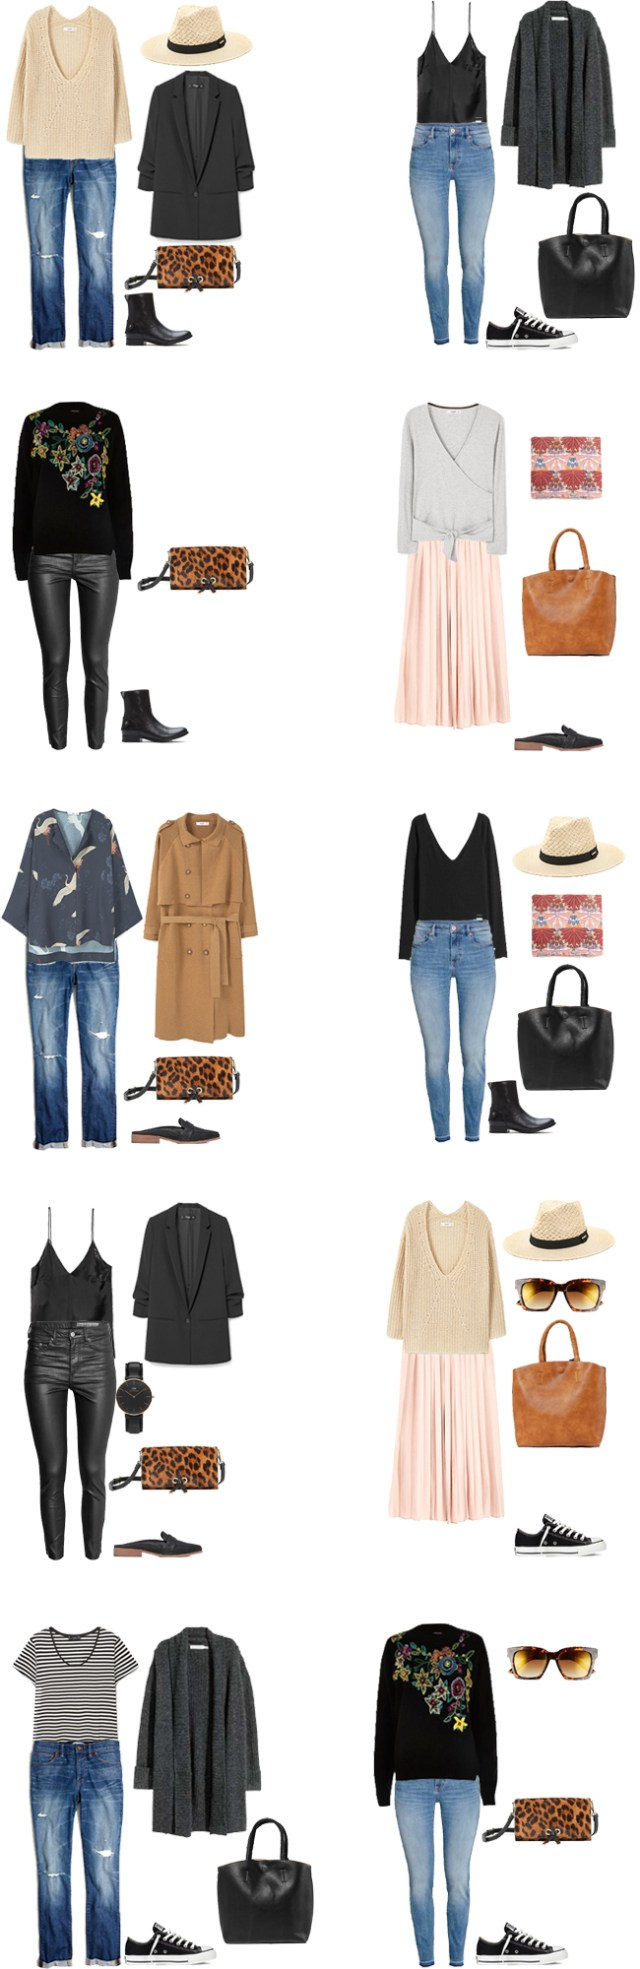 What to Wear in the Amalfi Coast Outfit Options 1-10 #travellight #packinglight #traveltips #travel #travelwardrobe #livelovesara